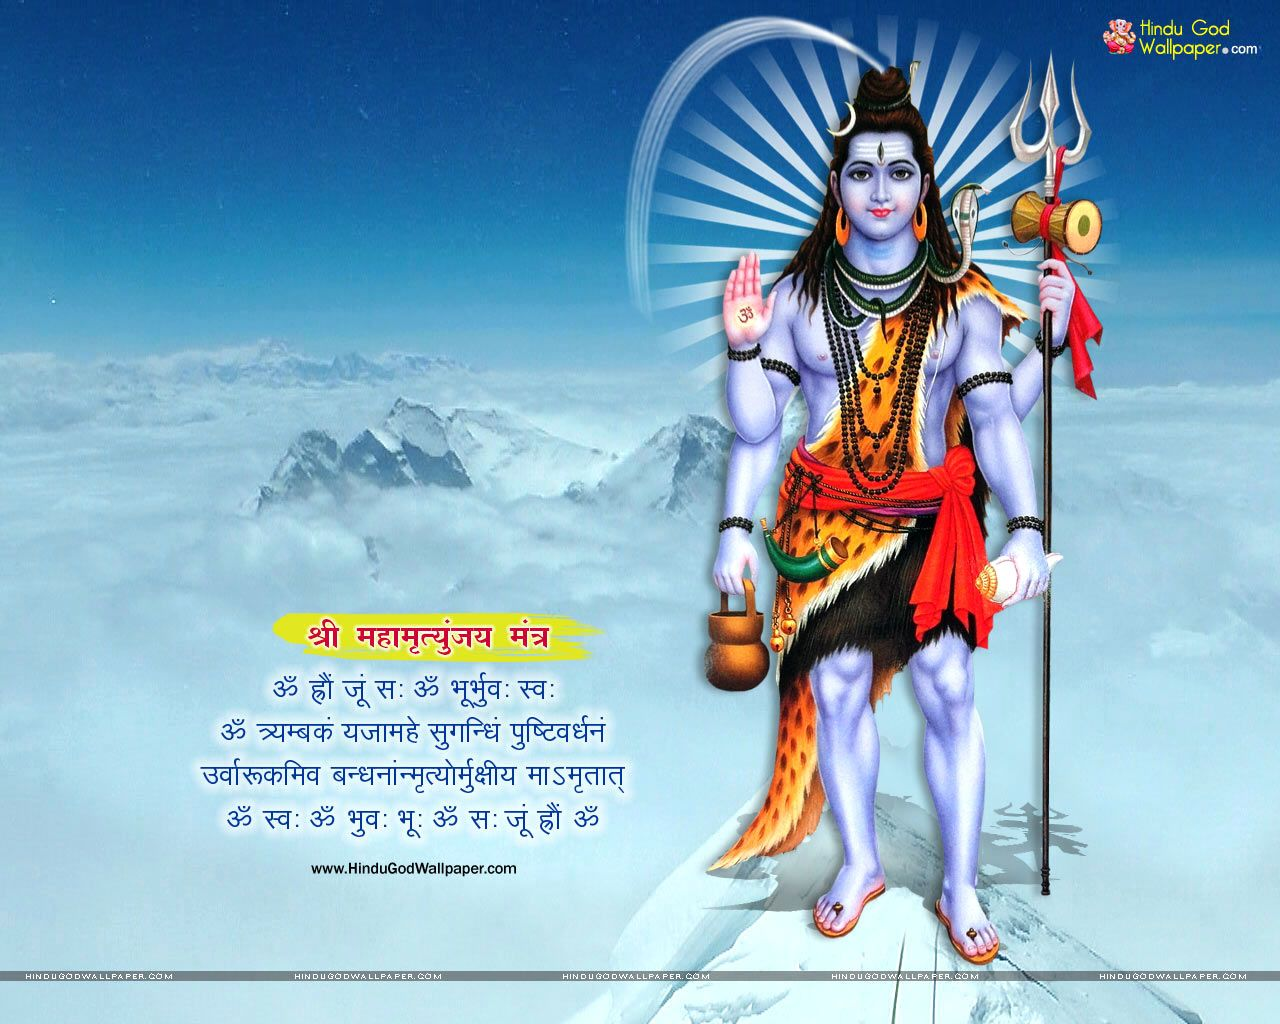 Shivratri Hd Wallpapers Photos Images Free Download Shiva Wallpaper Shivratri Wallpaper Wallpaper